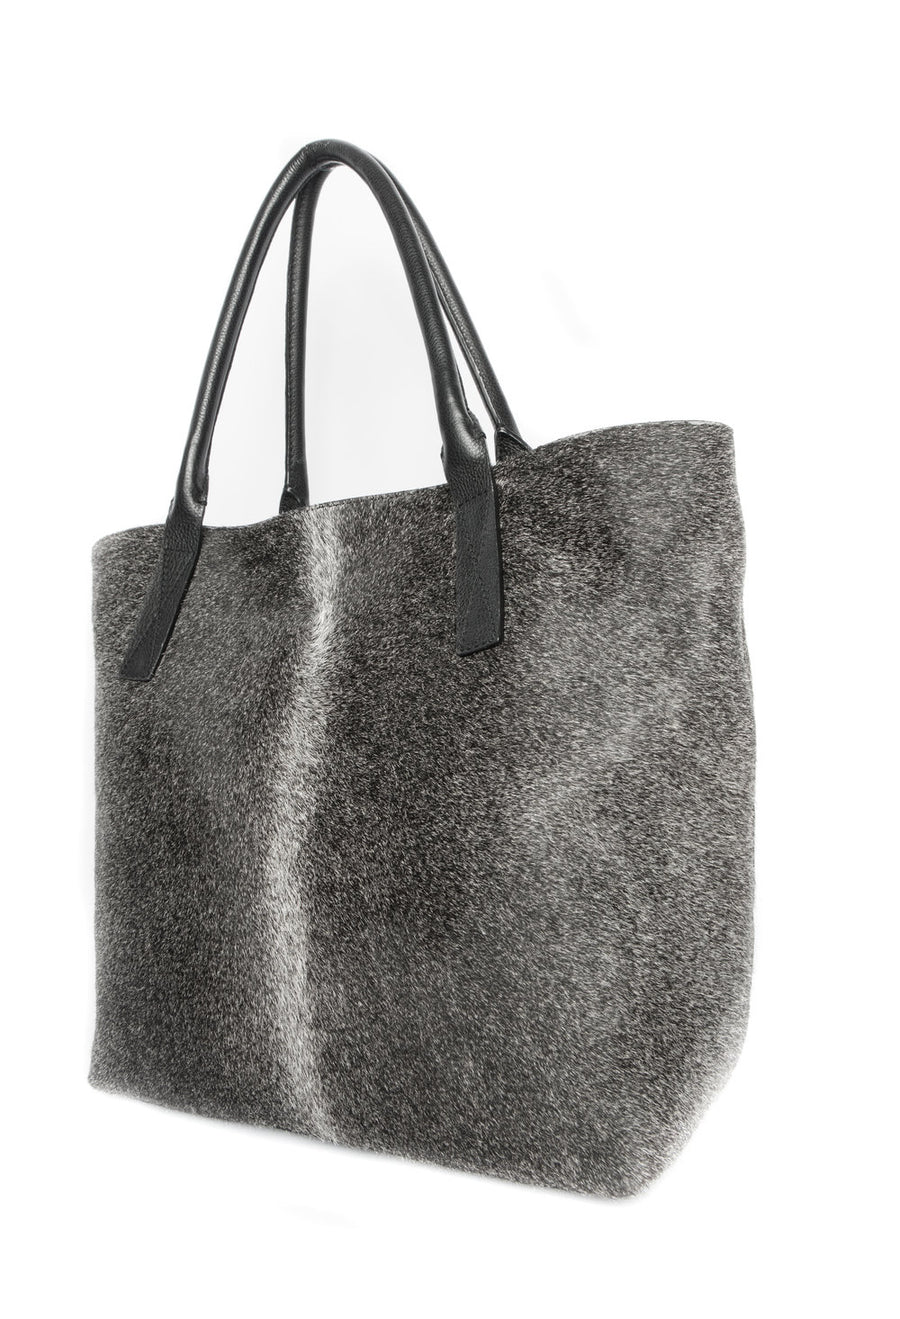 Aspen Day Tote in Grey